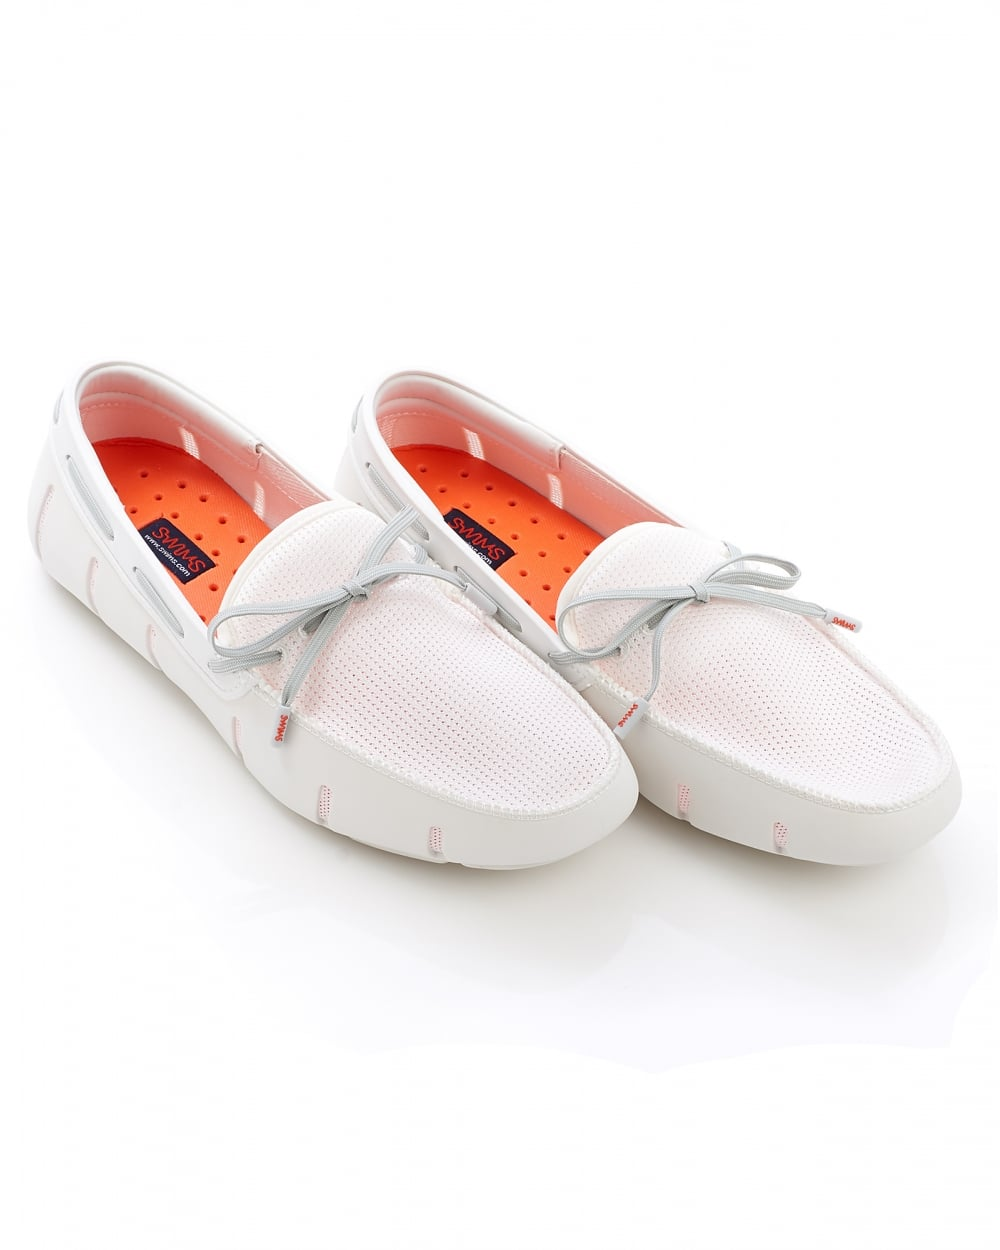 Where To Buy Swims Shoes Online